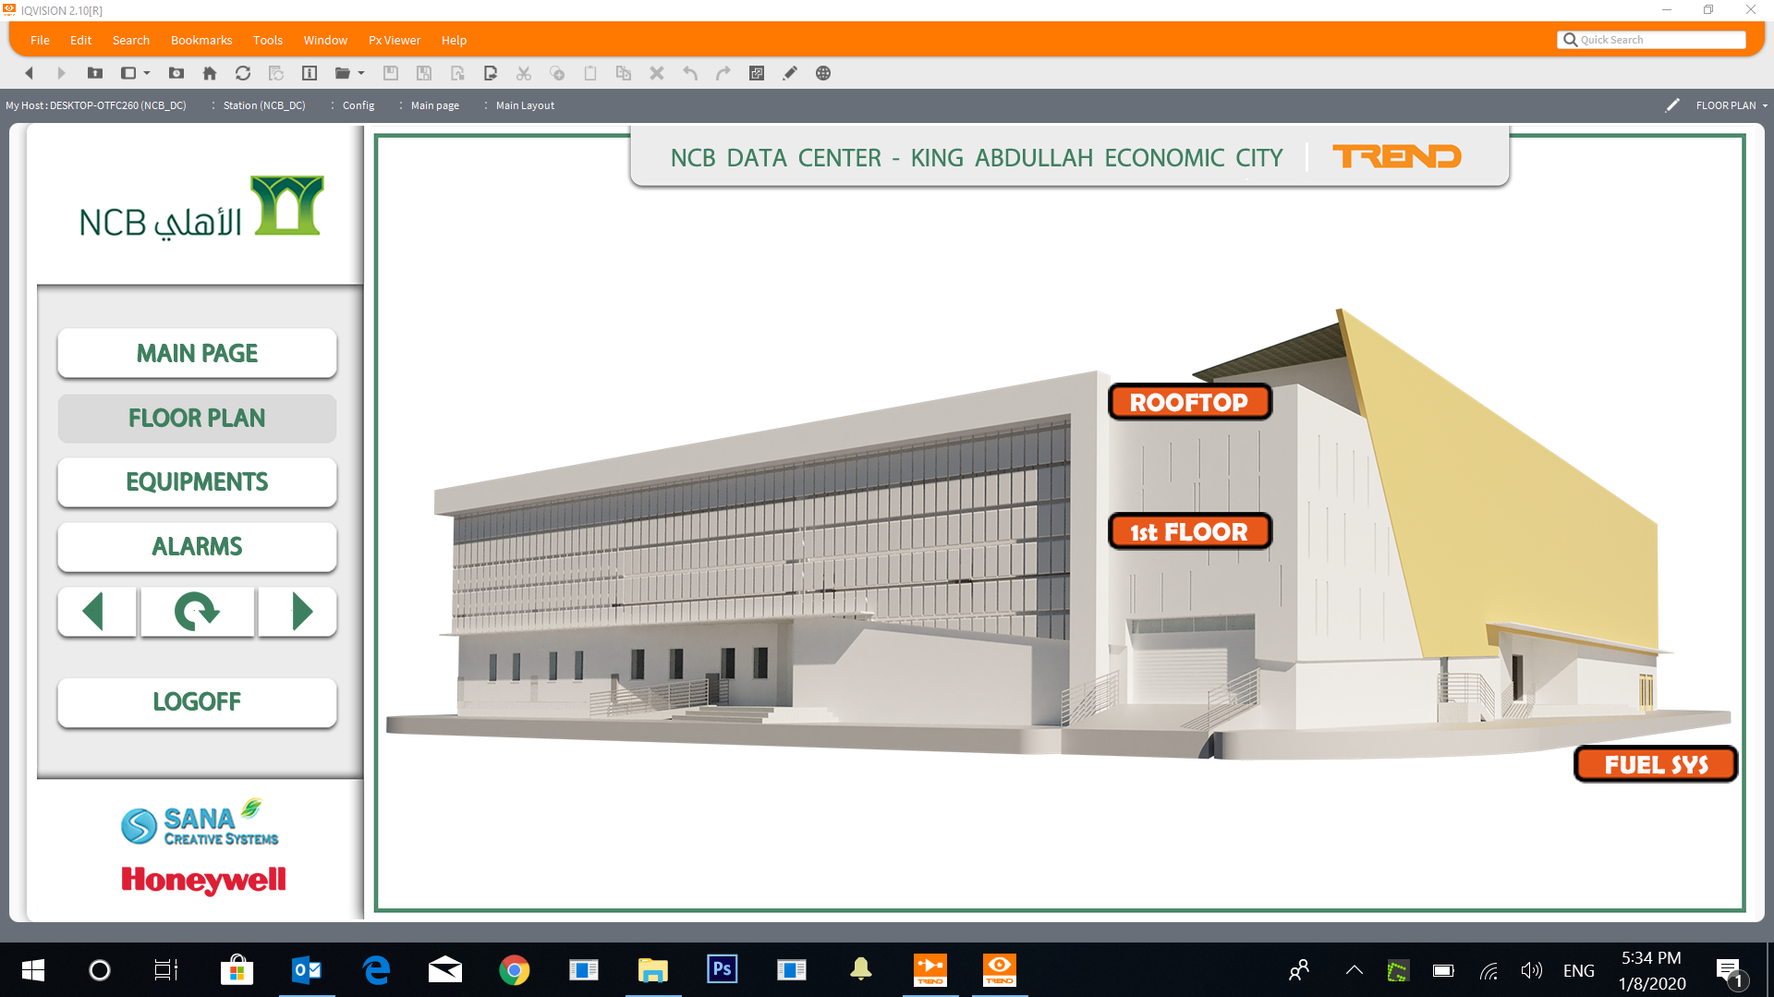 NCB-DATACENTER-T4-GRAPHICS-PAGES